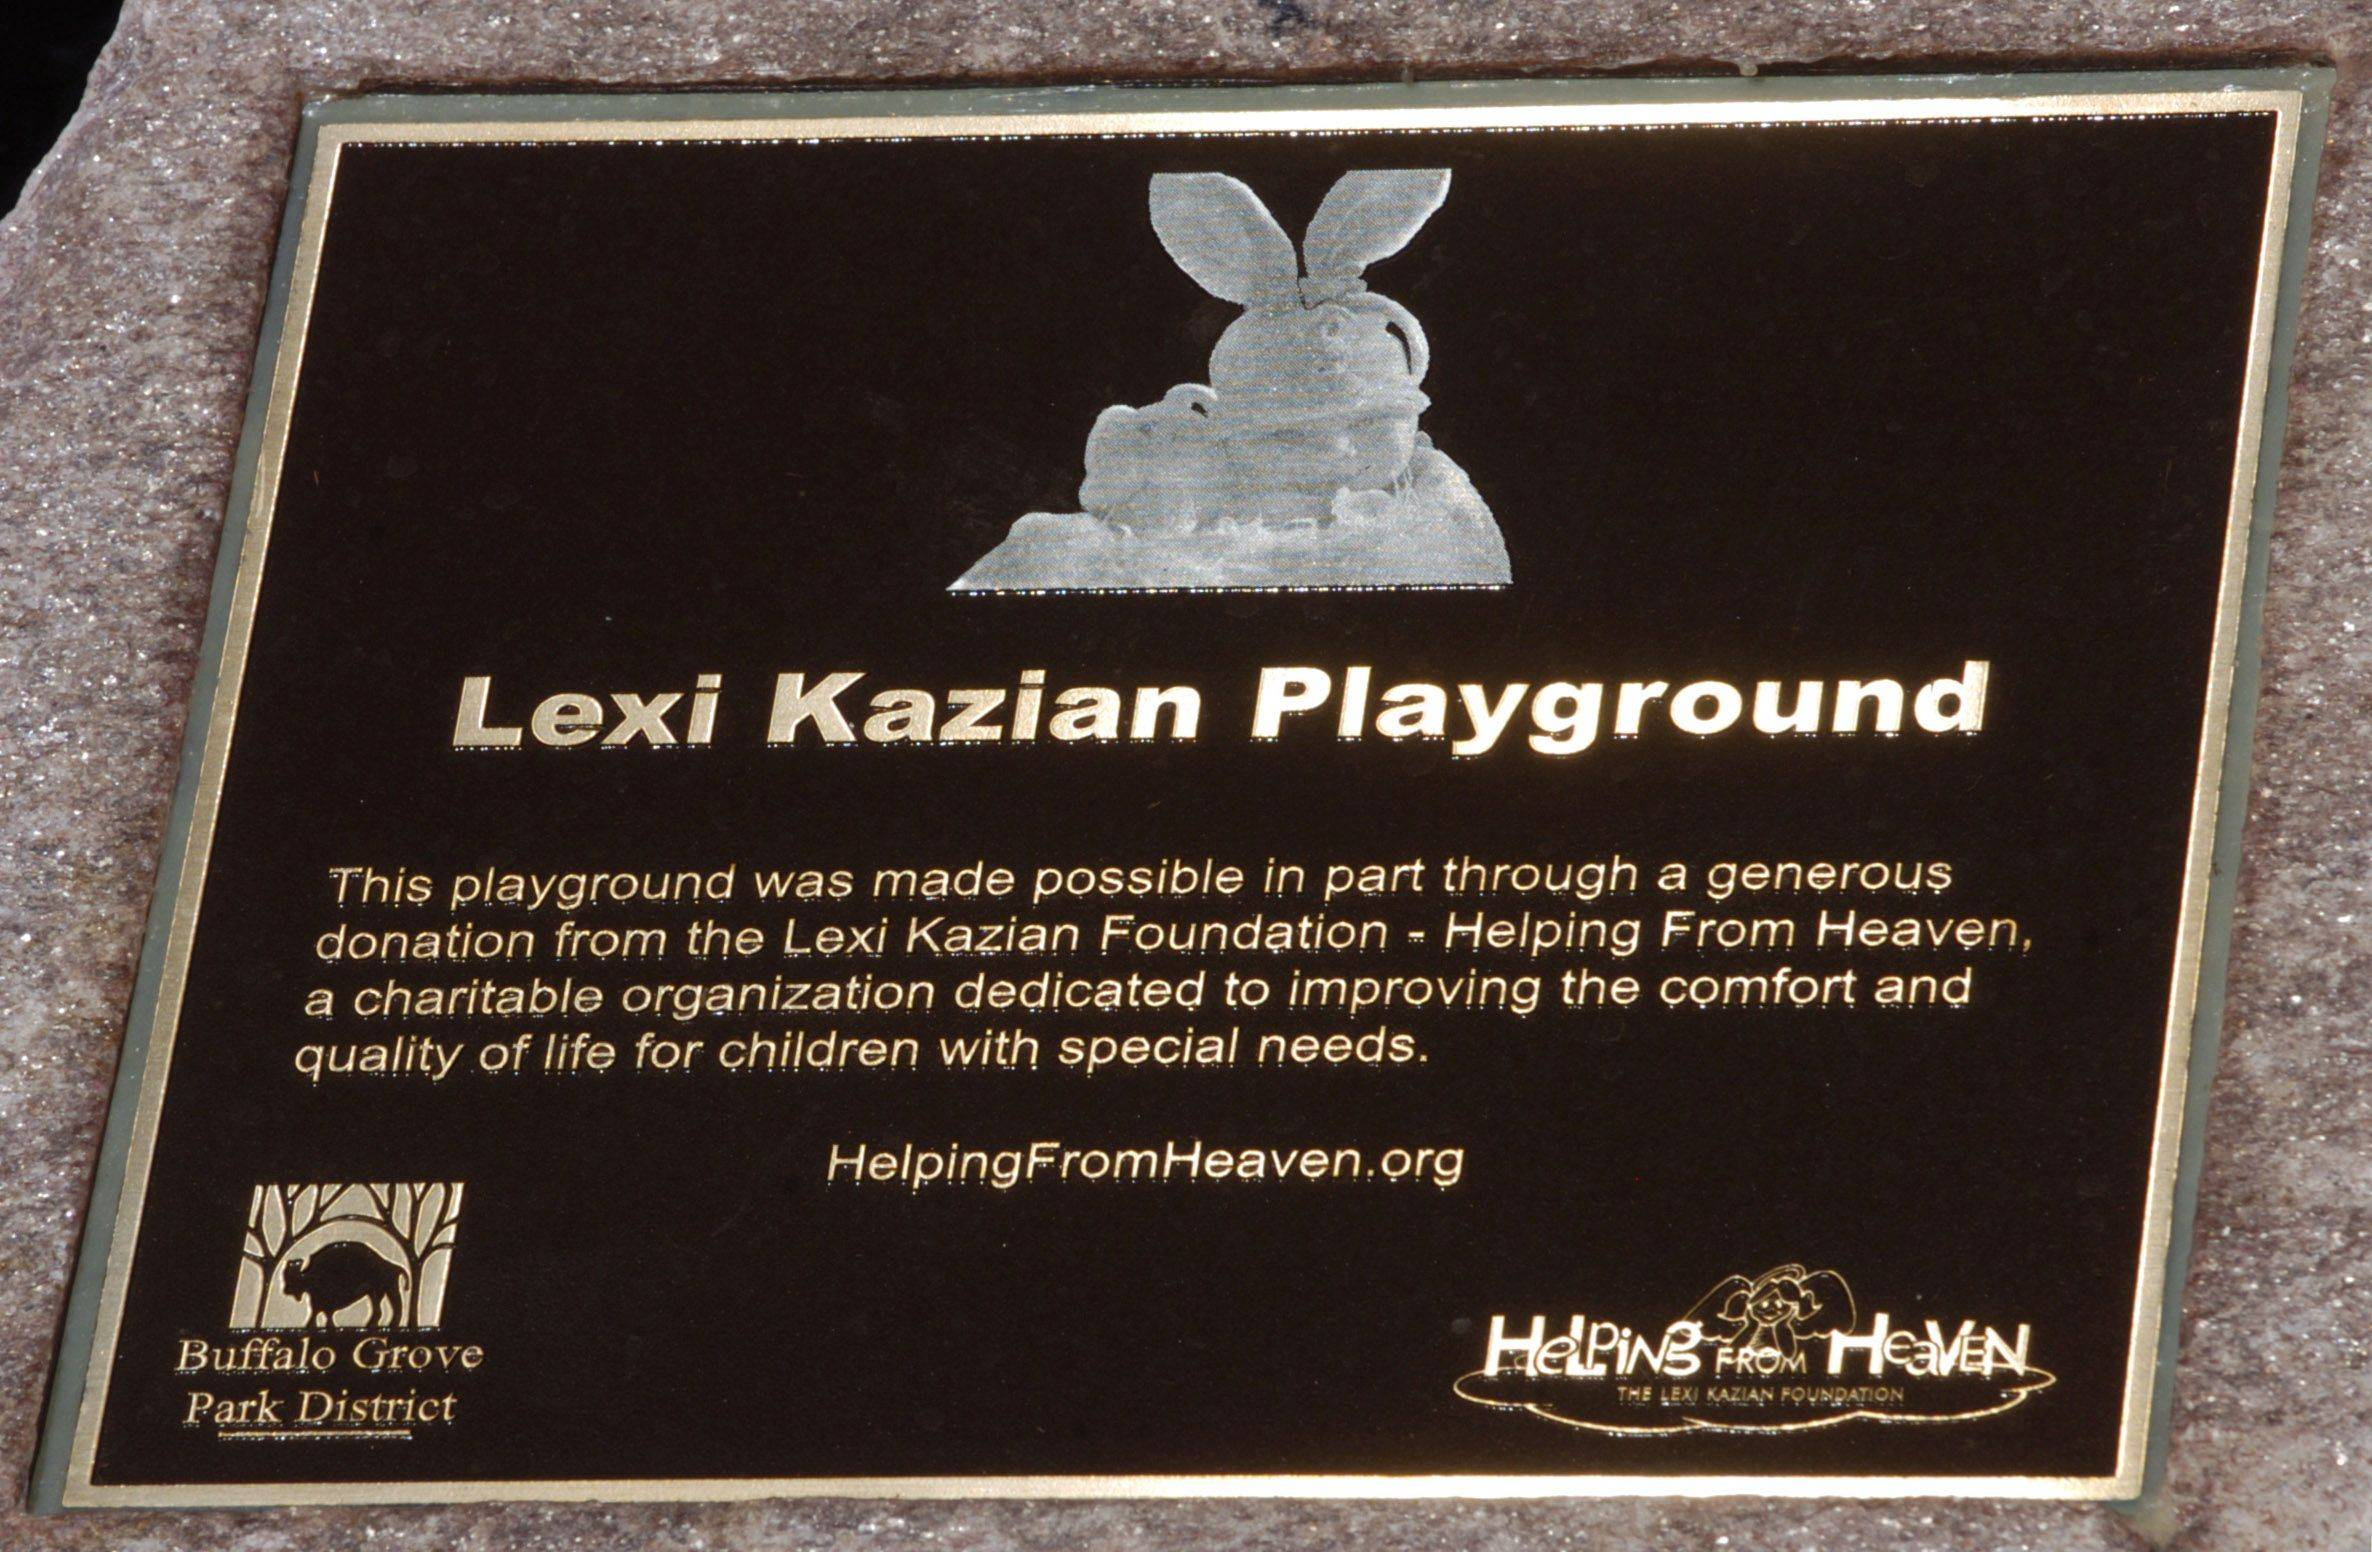 This plaque marks the dedication of the new Alcott Park playground in Buffalo Grove Kristy to Lexi Kazian.